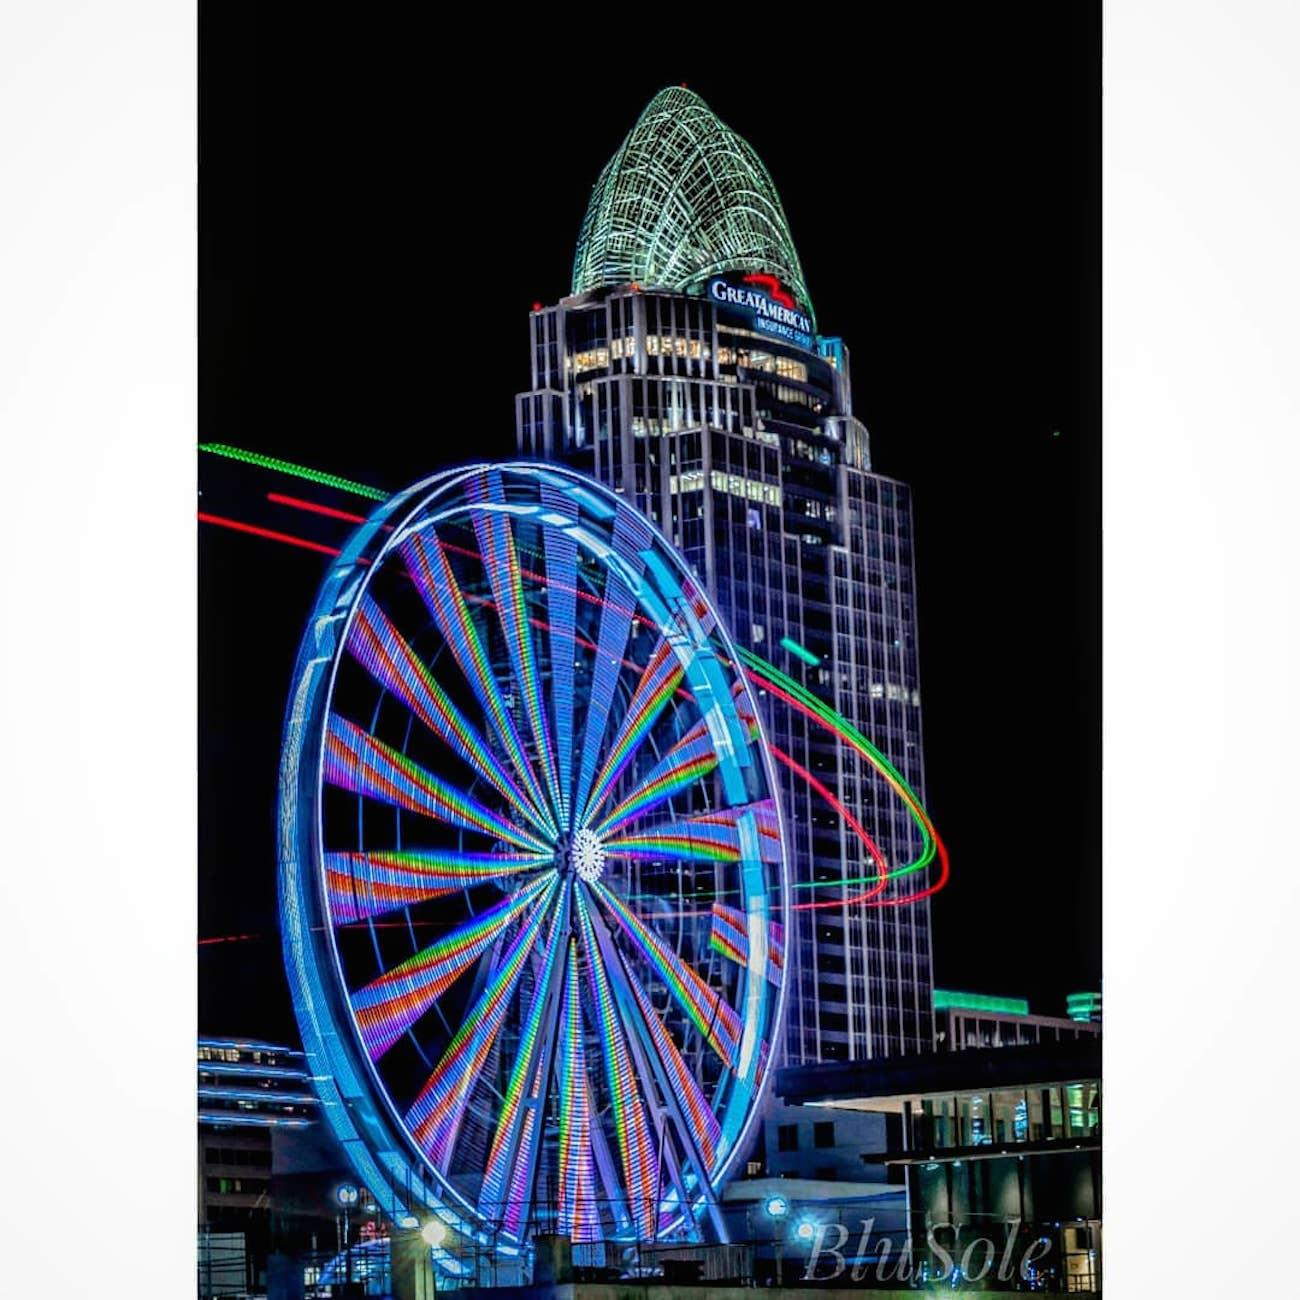 The SkyStar is the largest traveling observation wheel in the country. Guests are carried in gondolas up almost 15 stories high while overlooking the Ohio River. The 36 carriers are climate-controlled and can hold up to six people. The magnificent structure will only call The Banks its home through December 2nd before it's packed up and rolled to a new city. SkyStar runs daily, and tickets are $12.50. ADDRESS: 55 East Freedom Way (45202) / Image courtesy of Instagram user @blusole // Published 9.12.18<br>